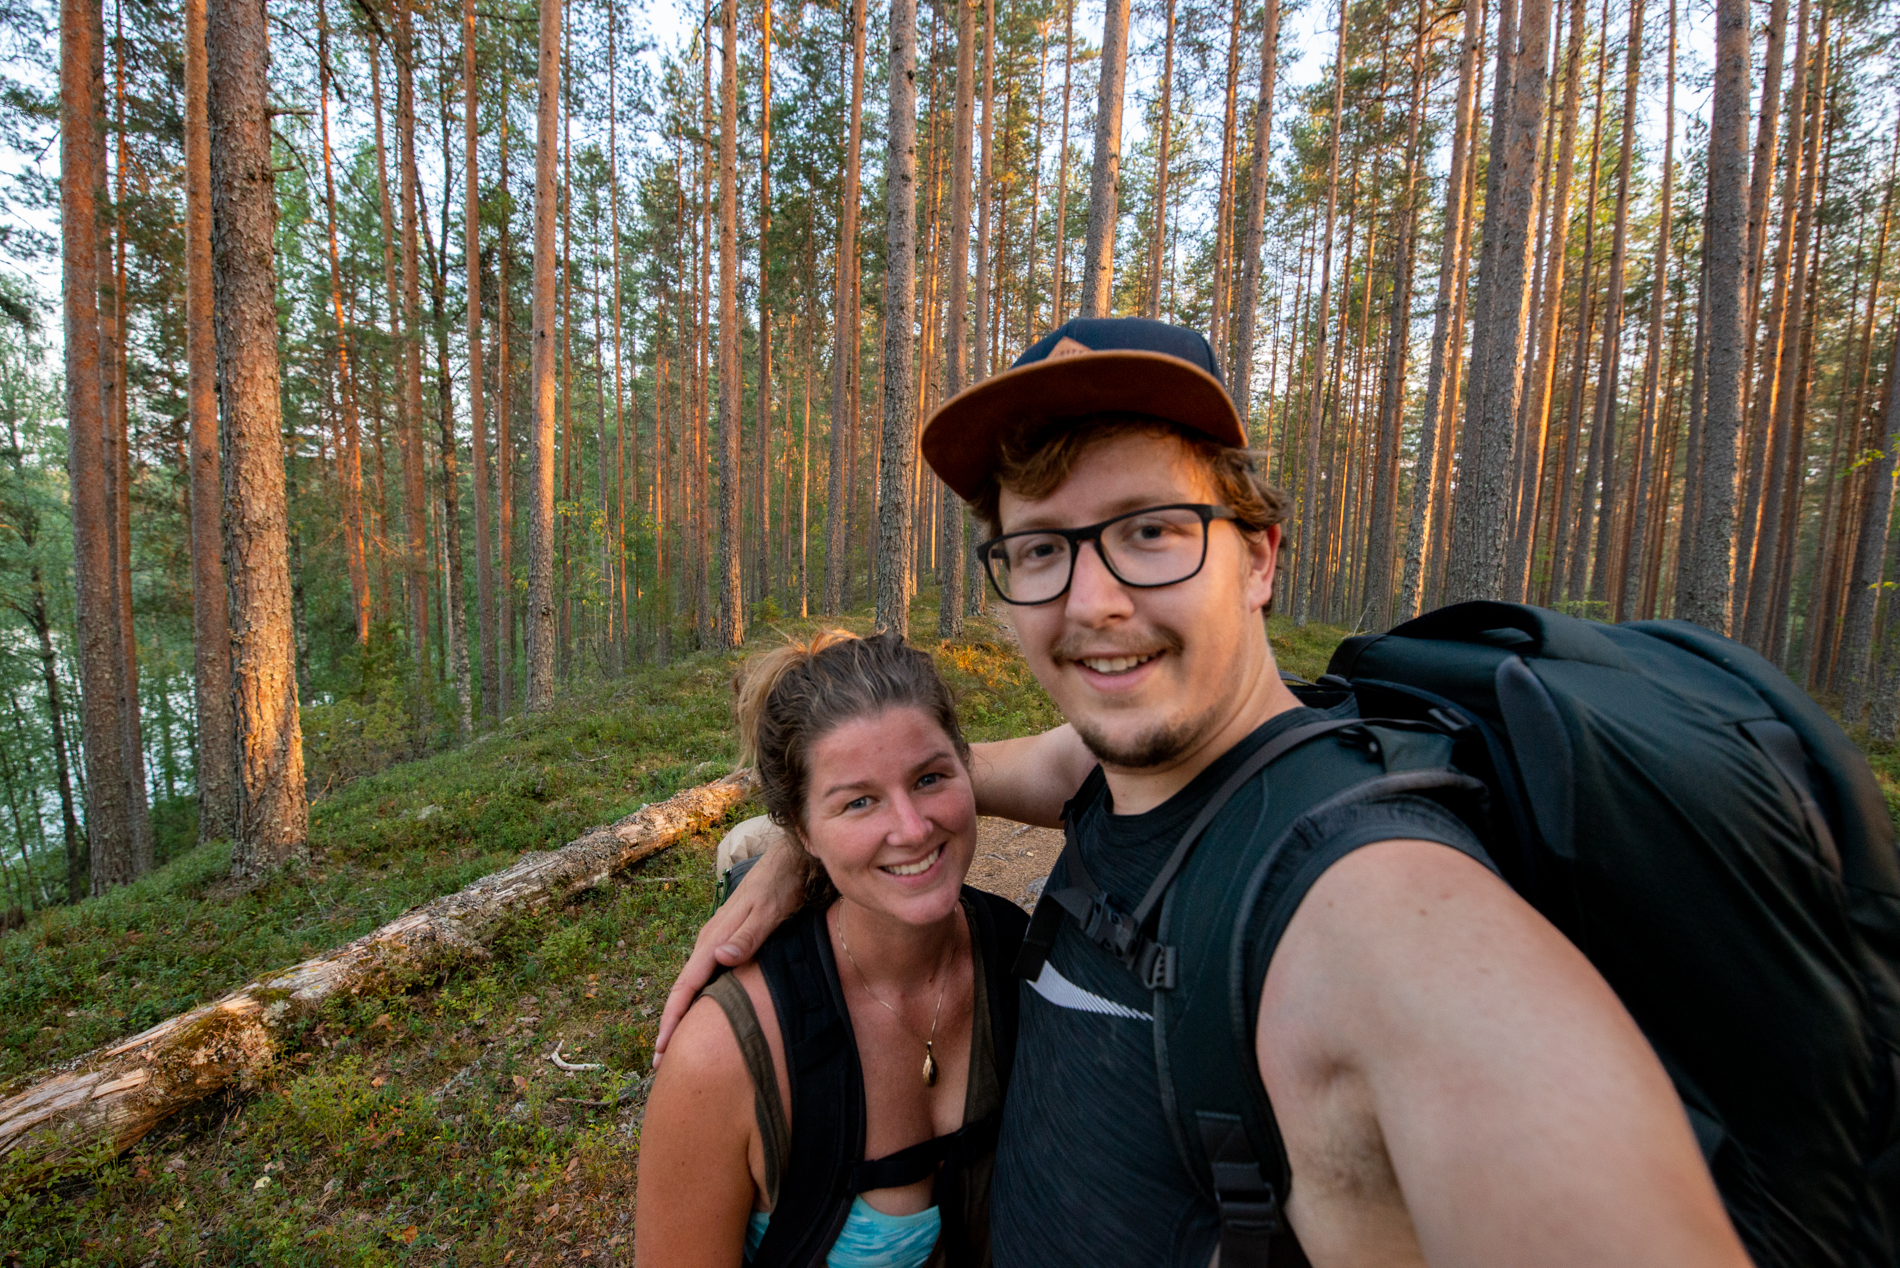 Ellis and me hiking on their way to camp in Jyväskilä, Finland.